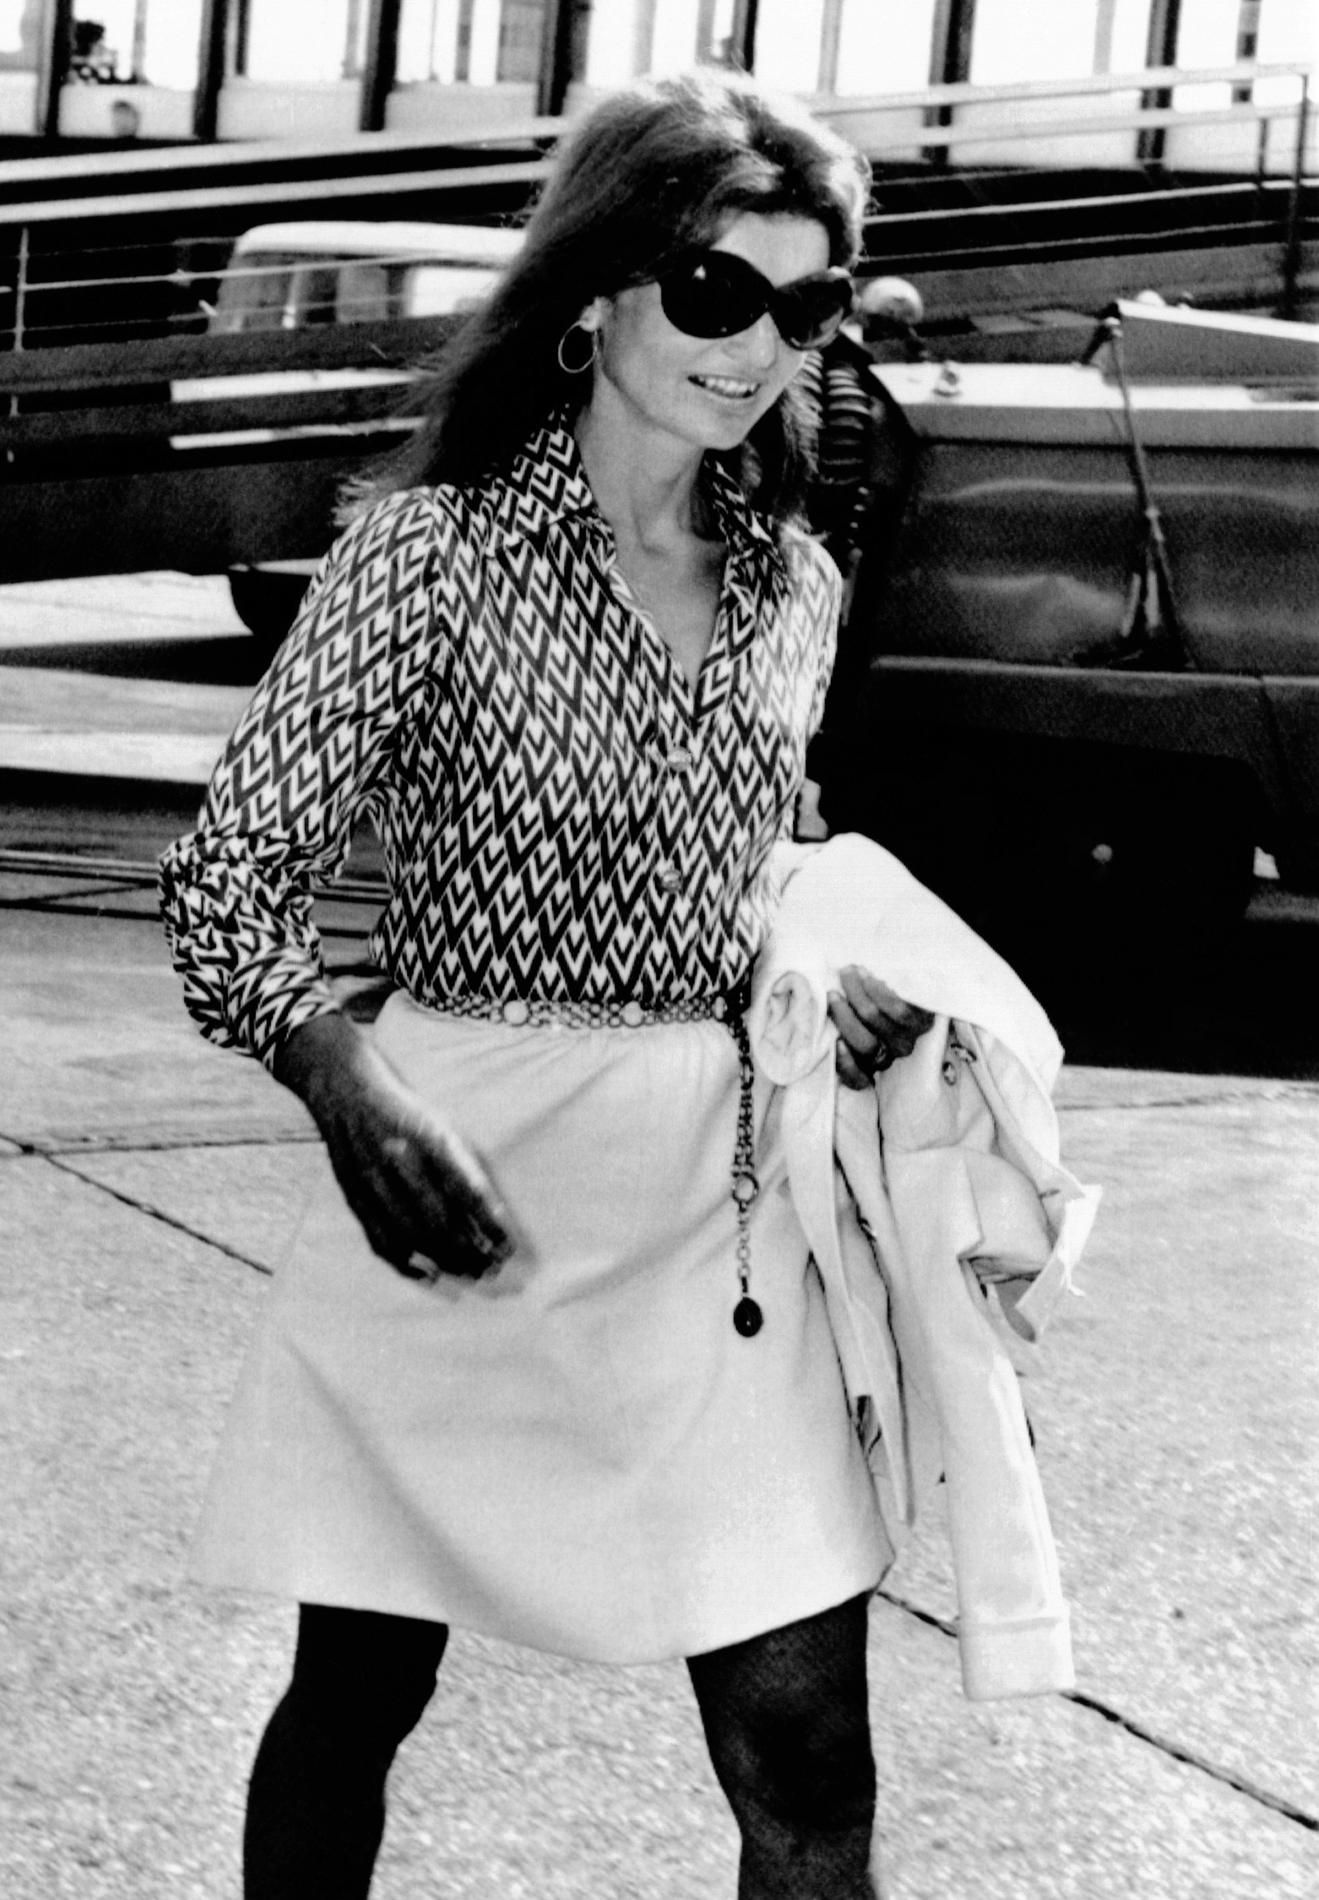 EVGENIA GL BOHEME JACKIE ONASSIS IN ROME 1970 Figaro 28 Juillet, Jacqueline  Kennedy Onassis, 28b46e23715a